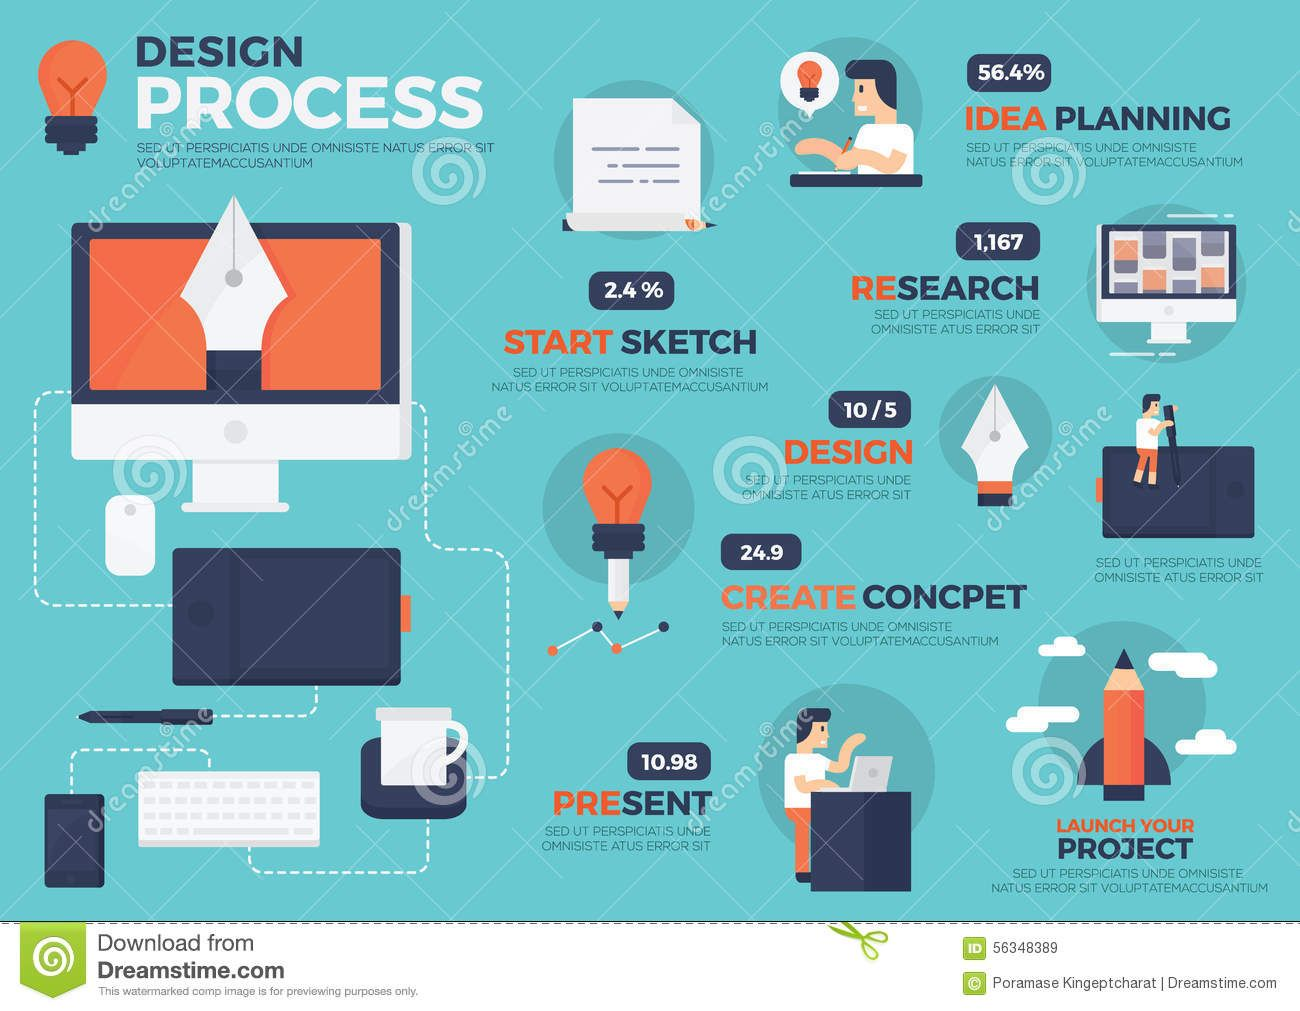 graphic design process infographic | visual design | pinterest